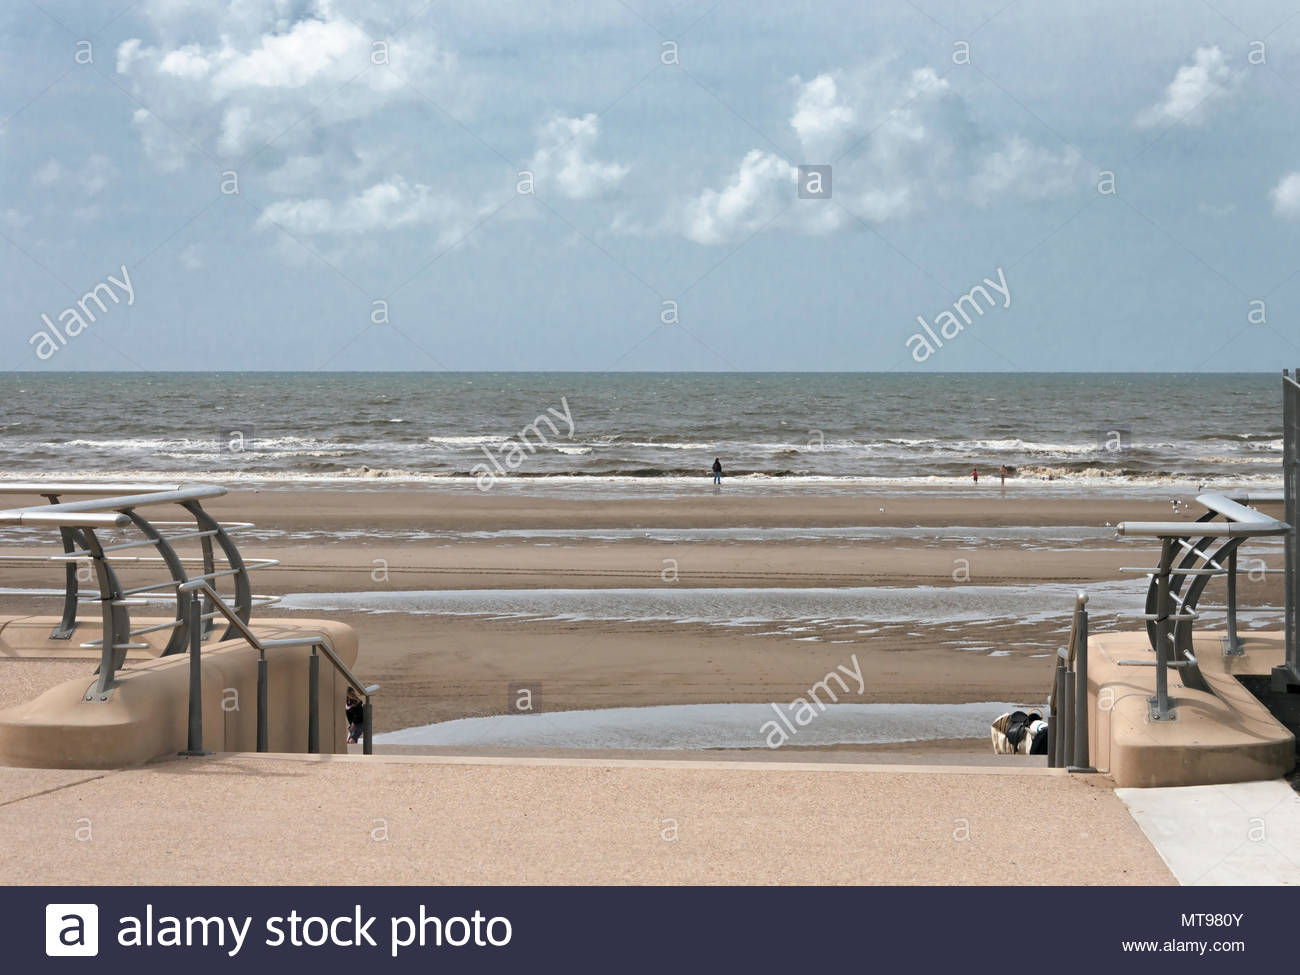 2008, An adult and a couple of children in the distance playing on an almost deserted sea front in Blackpool England, while restoration work was ongoi - Stock Image